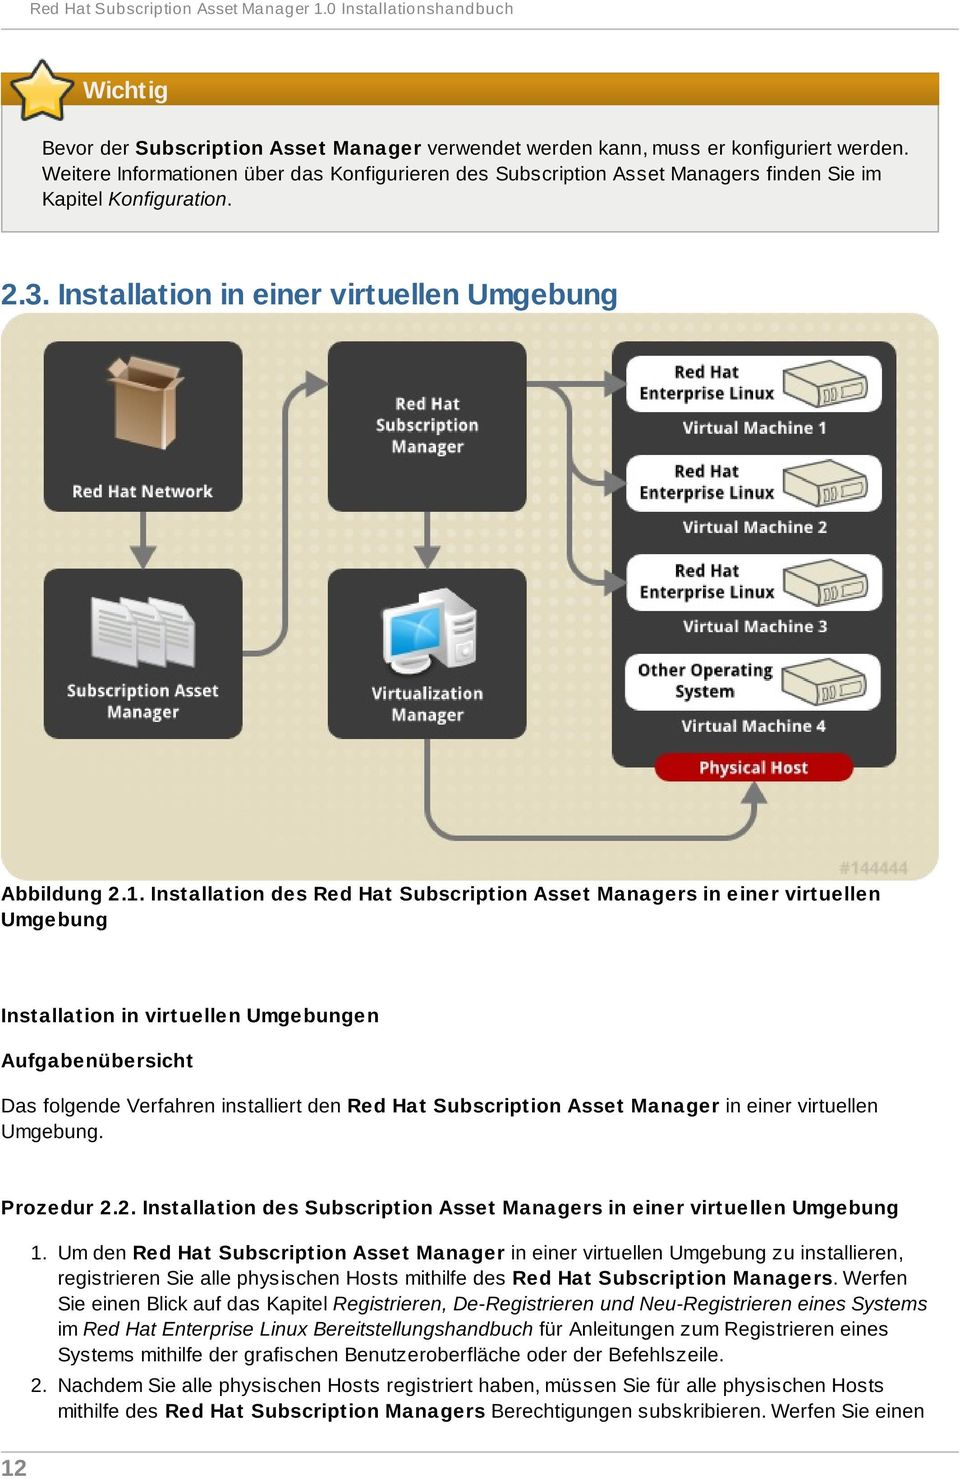 Installation des Red Hat Subscription Asset Managers in einer virtuellen Umgebung Installation in virtuellen Umgebungen Das folgende Verfahren installiert den Red Hat Subscription Asset Manager in